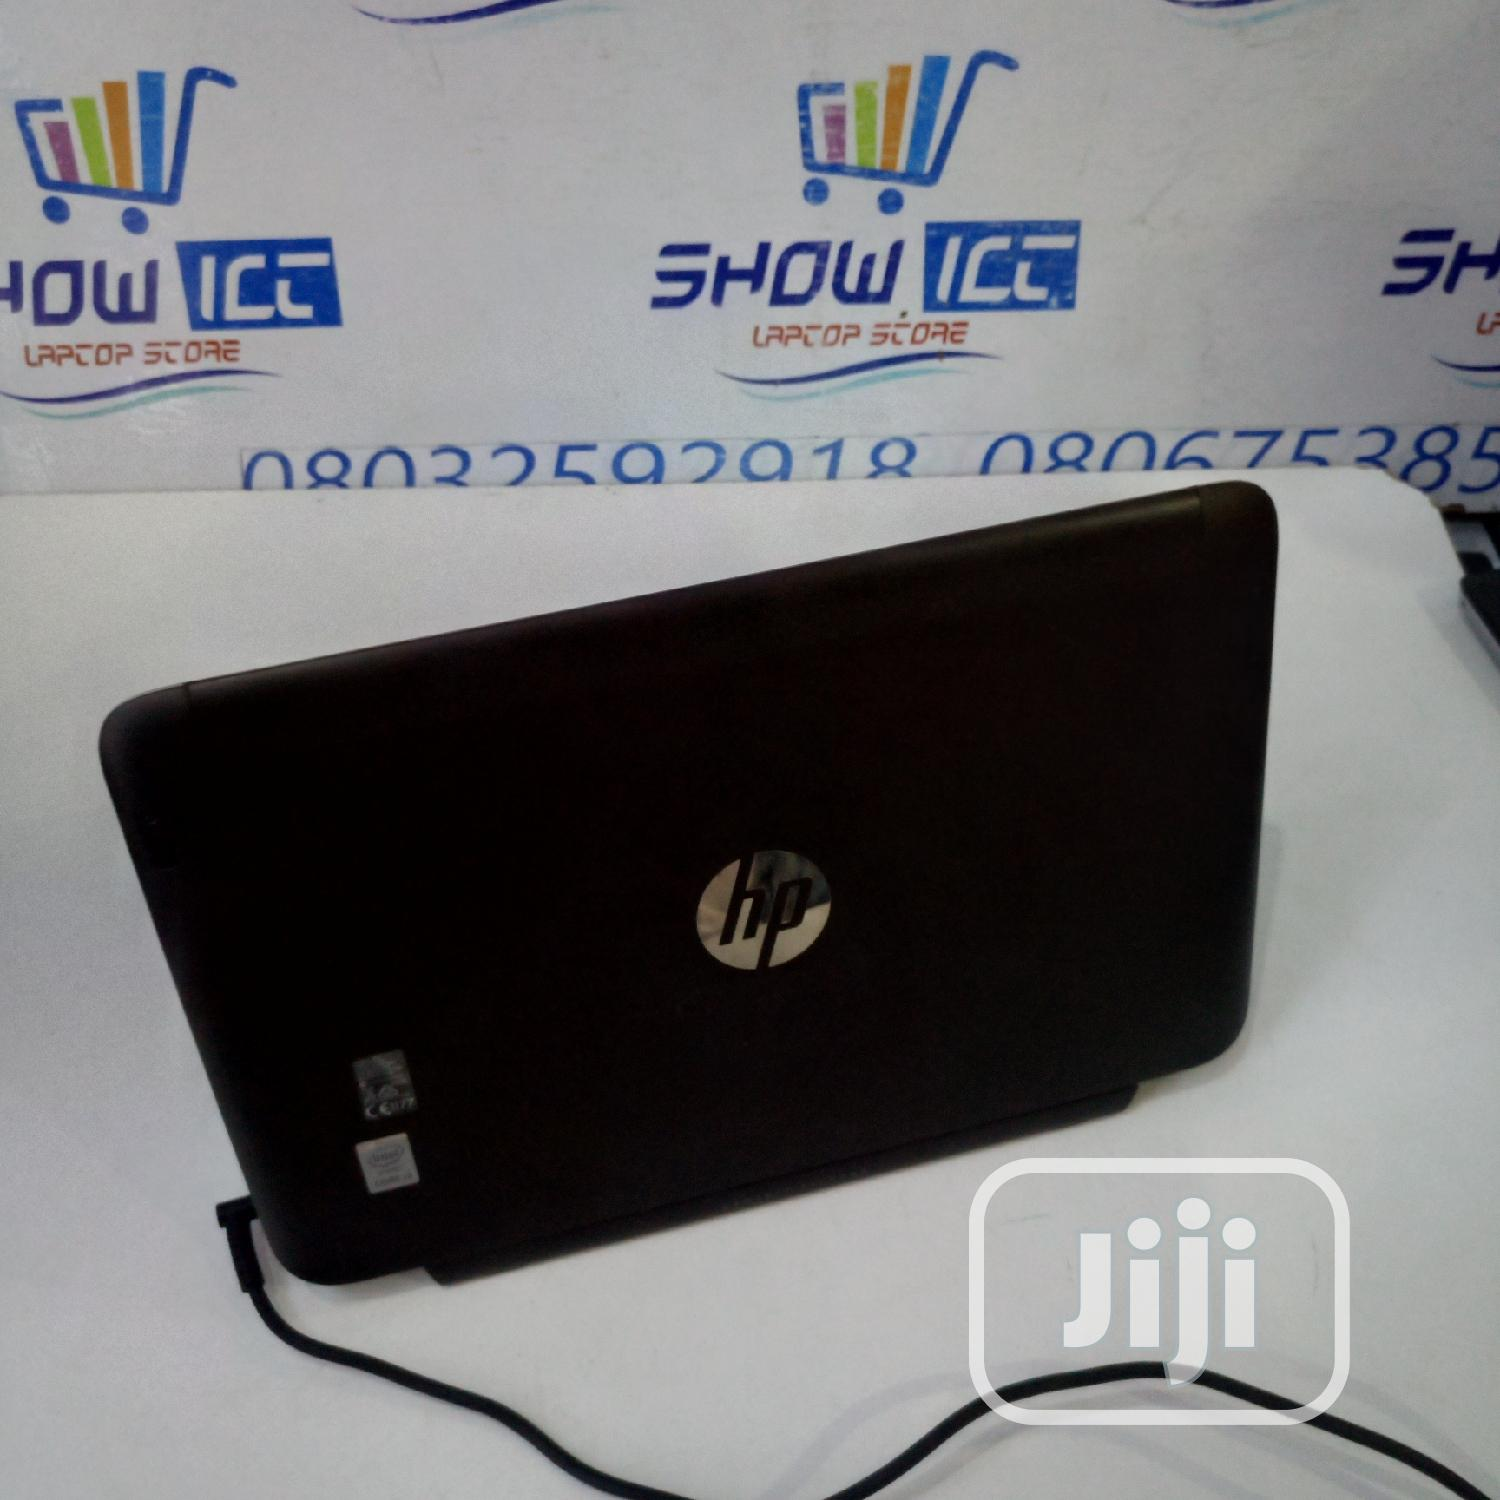 Laptop HP Spectre X2 4GB Intel Core I3 SSD 128GB   Laptops & Computers for sale in Asokoro, Abuja (FCT) State, Nigeria